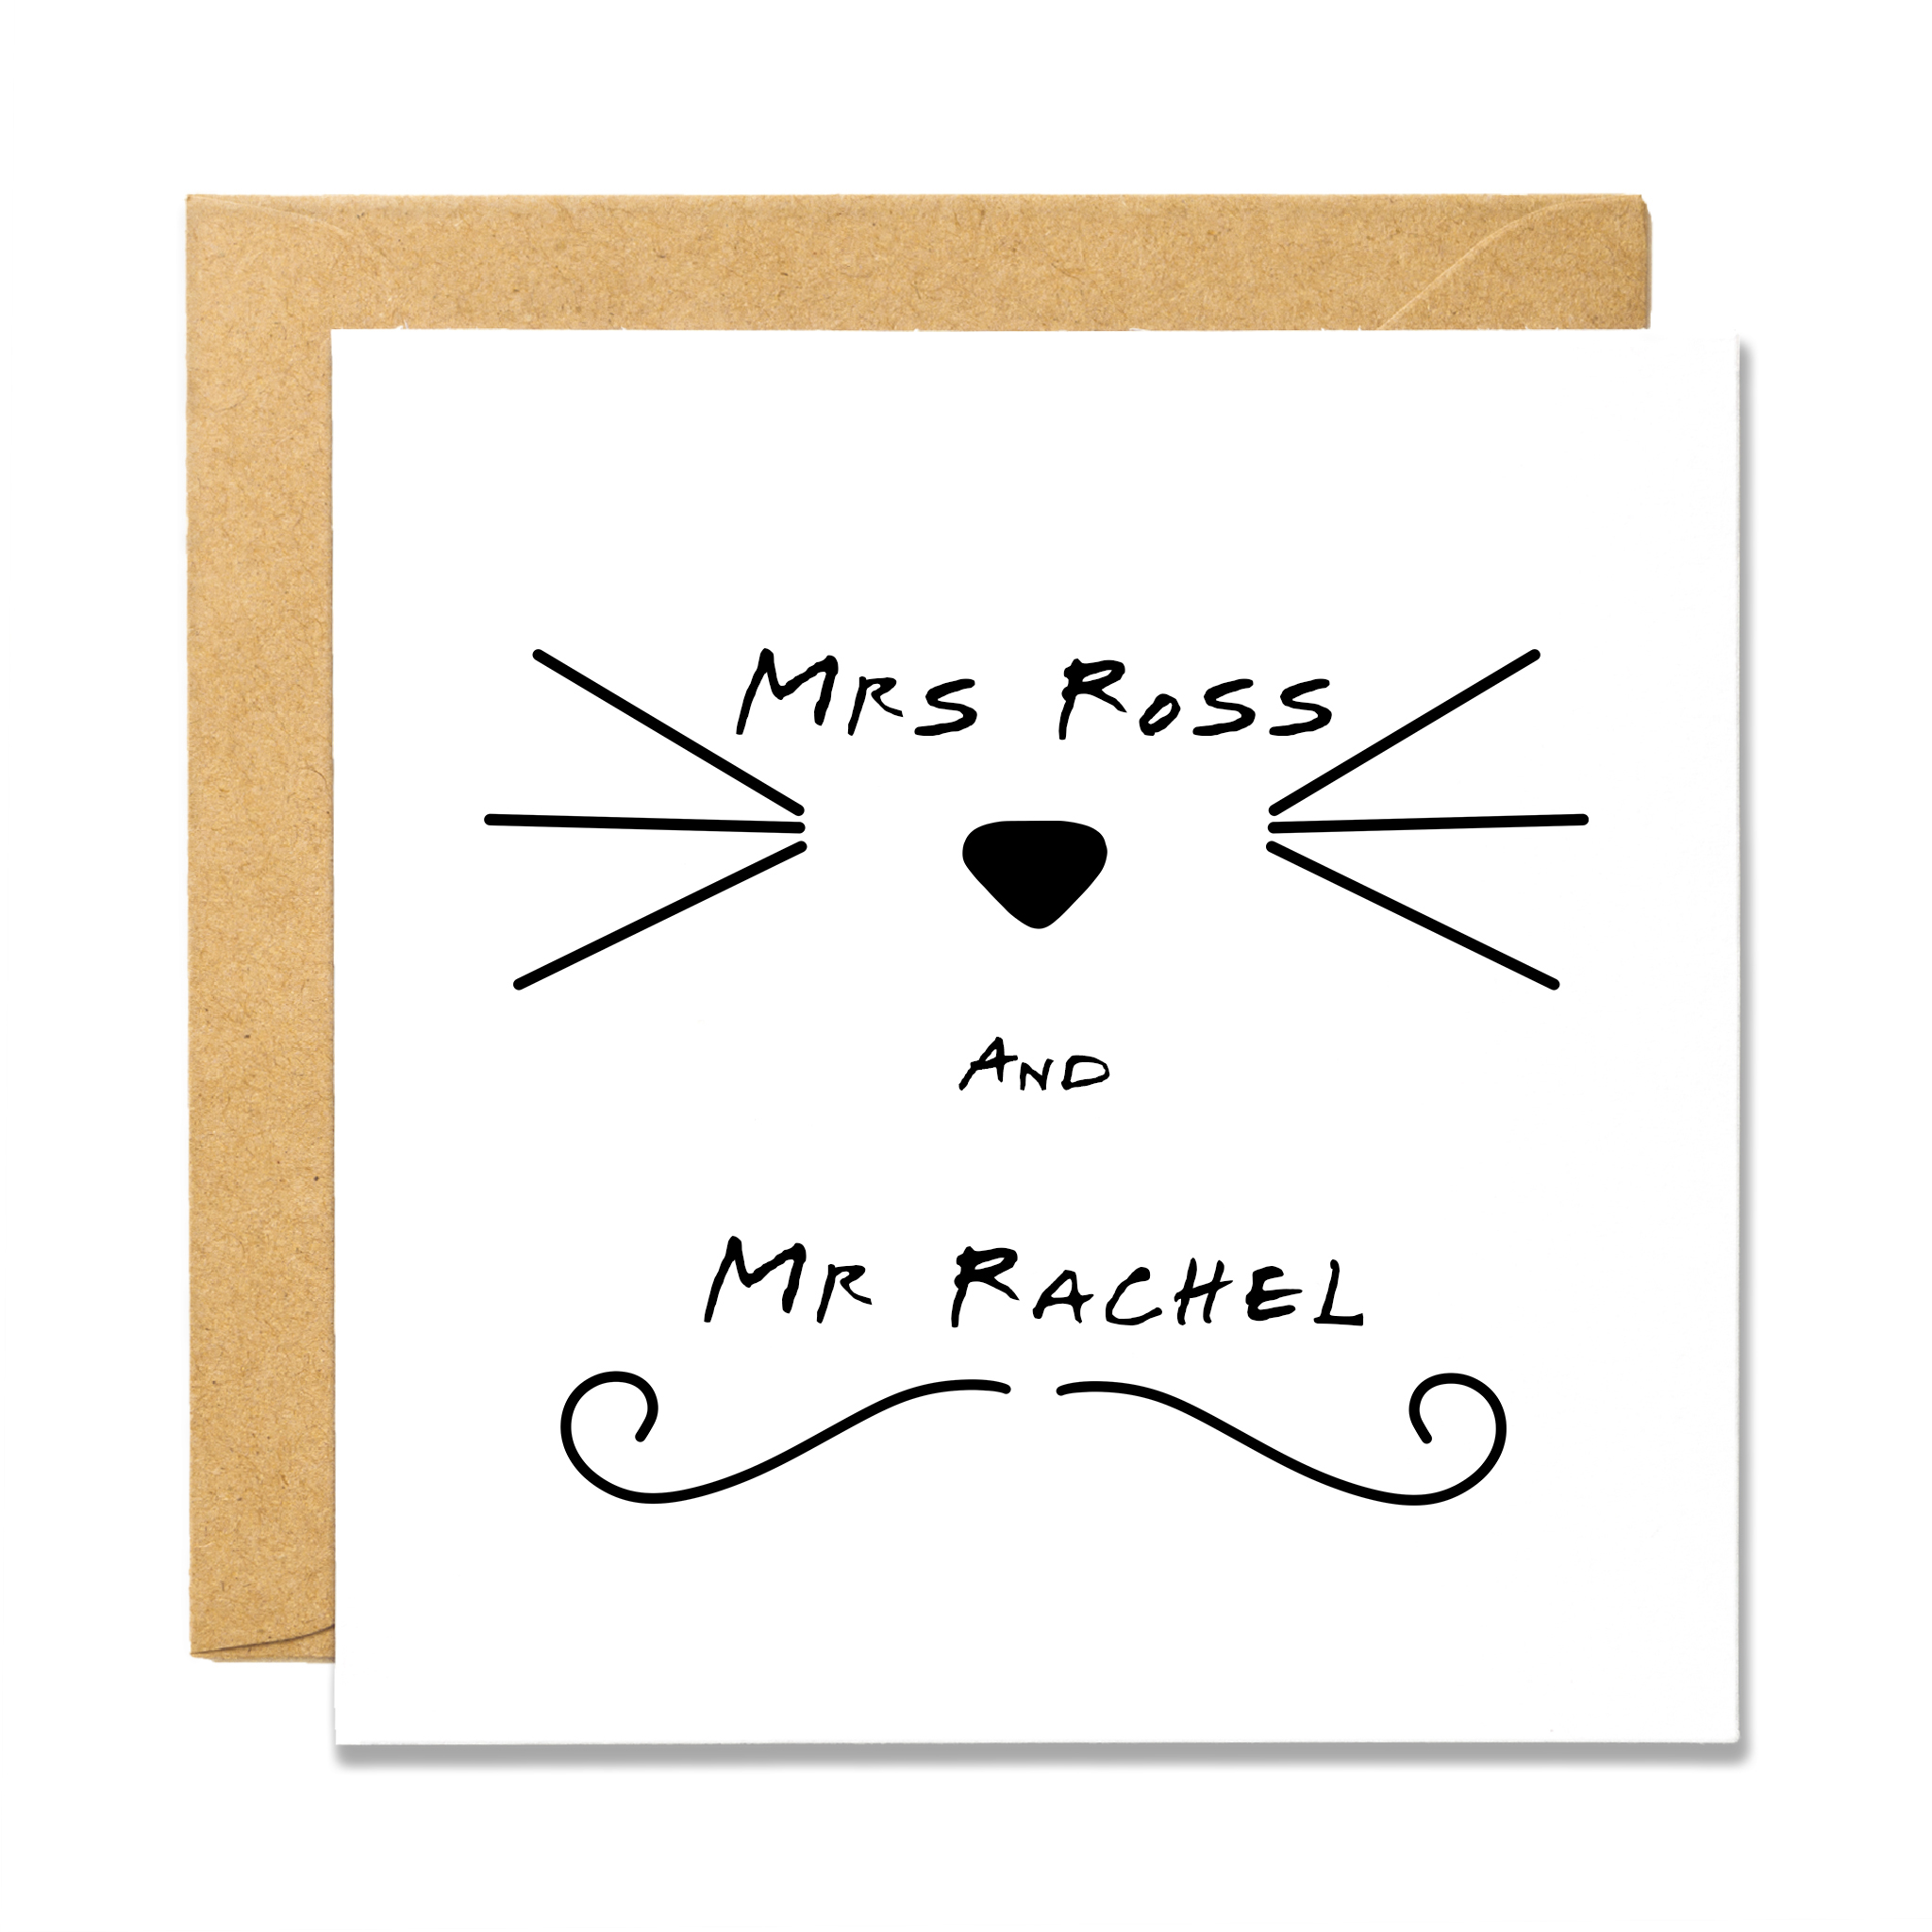 Mrs Ross & Mr Rachel